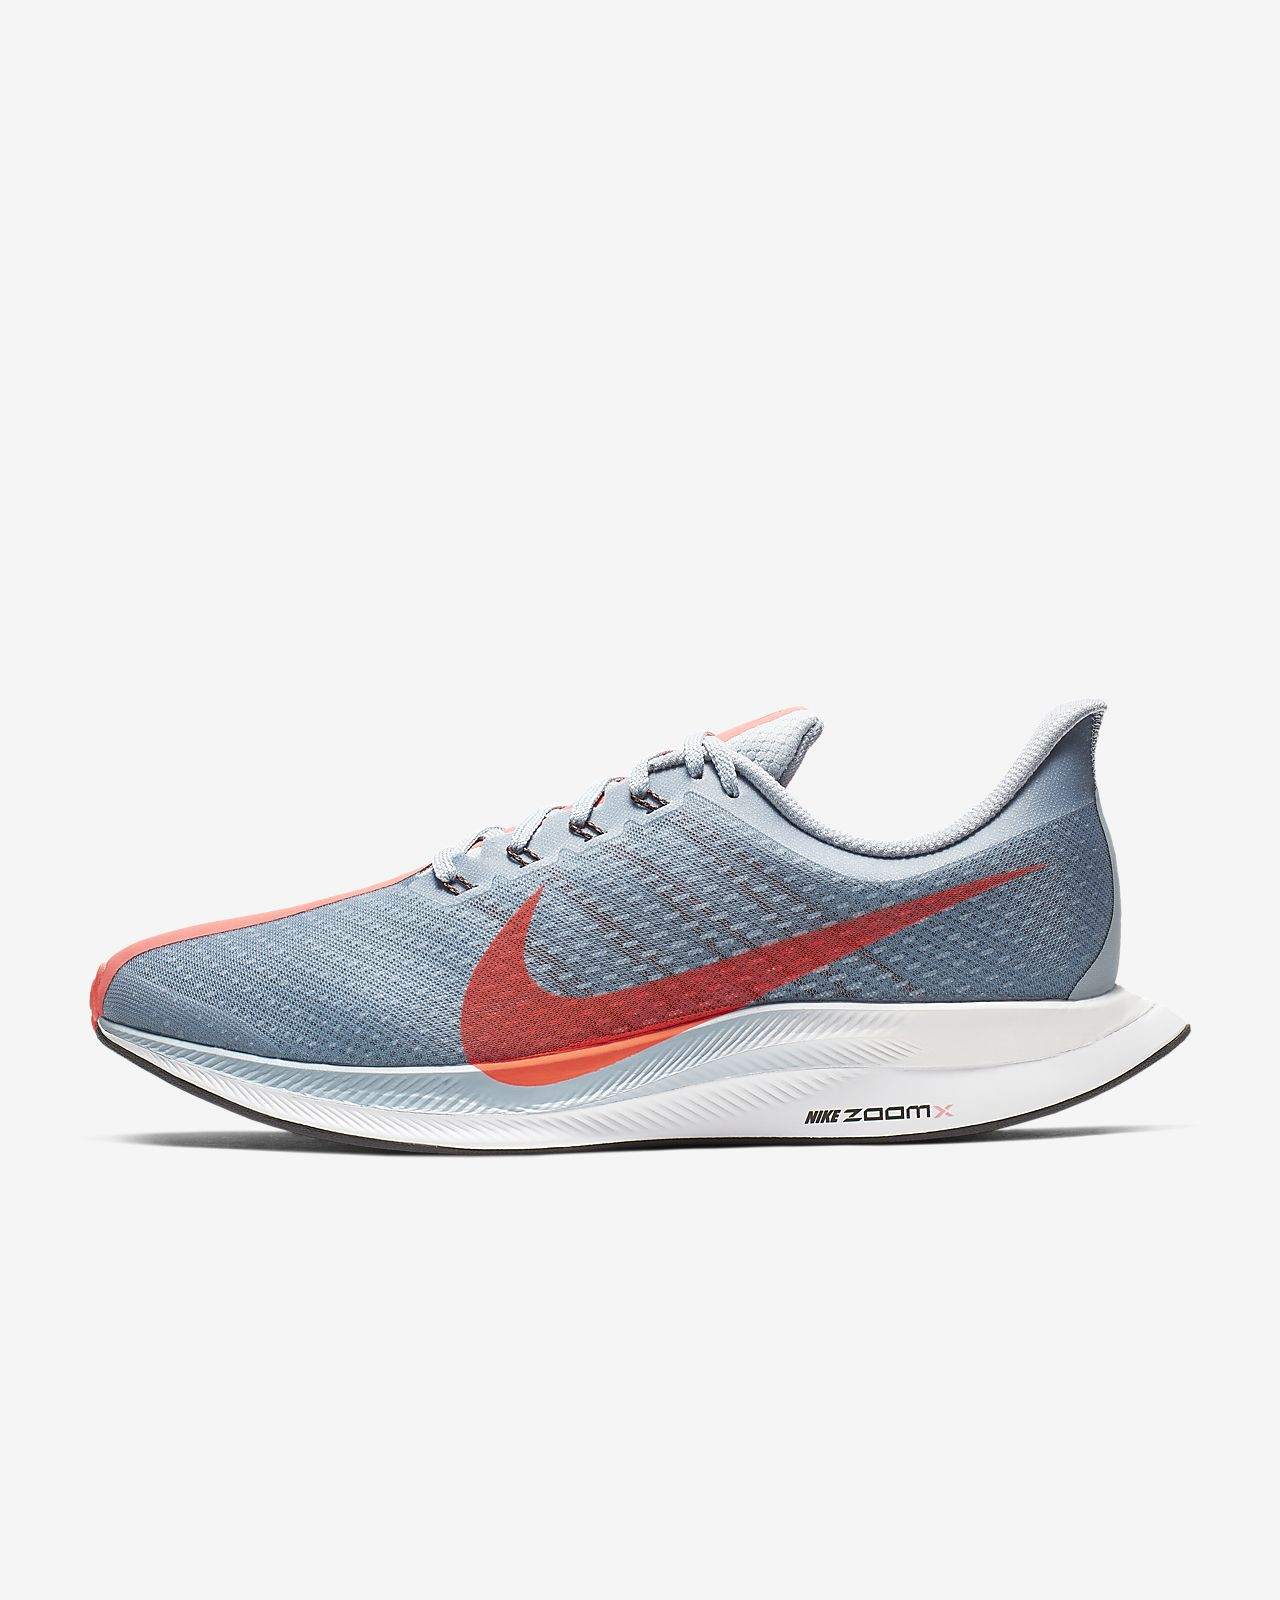 newest 11d54 3b379 Nike Zoom Pegasus Turbo. 180 €